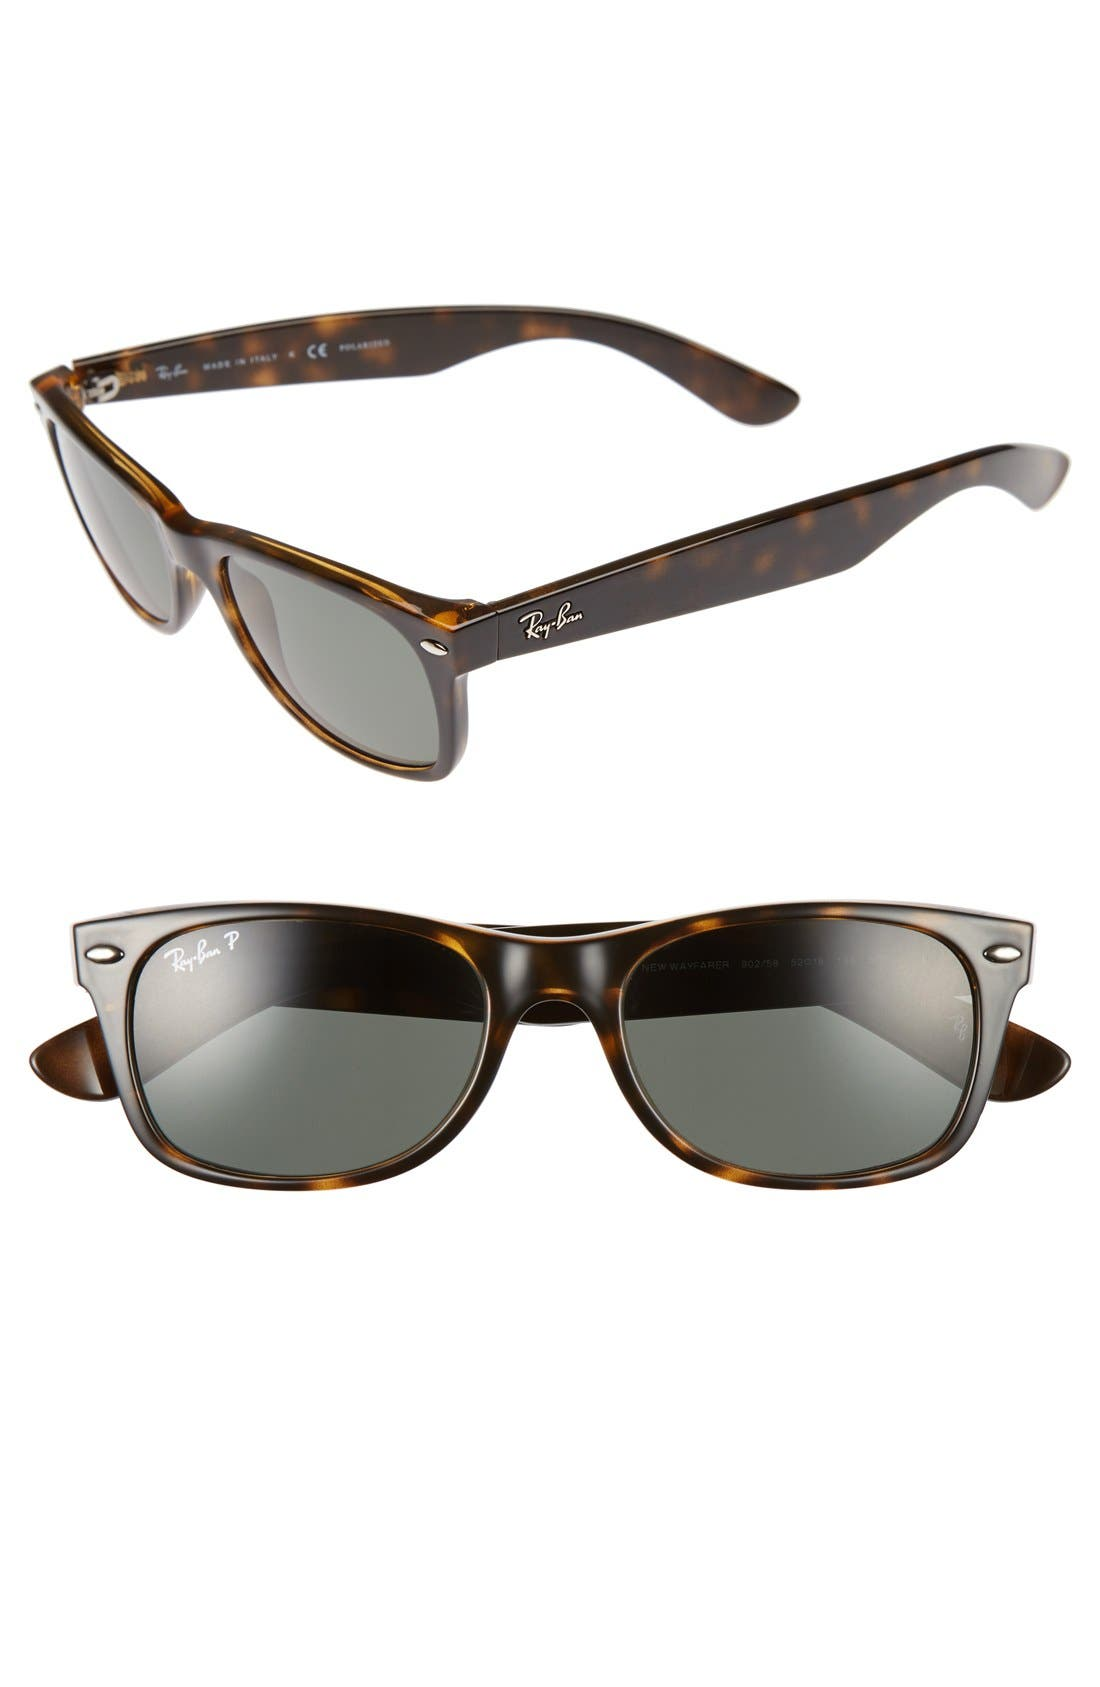 Main Image - Ray-Ban Small New Wayfarer 52mm Polarized Sunglasses